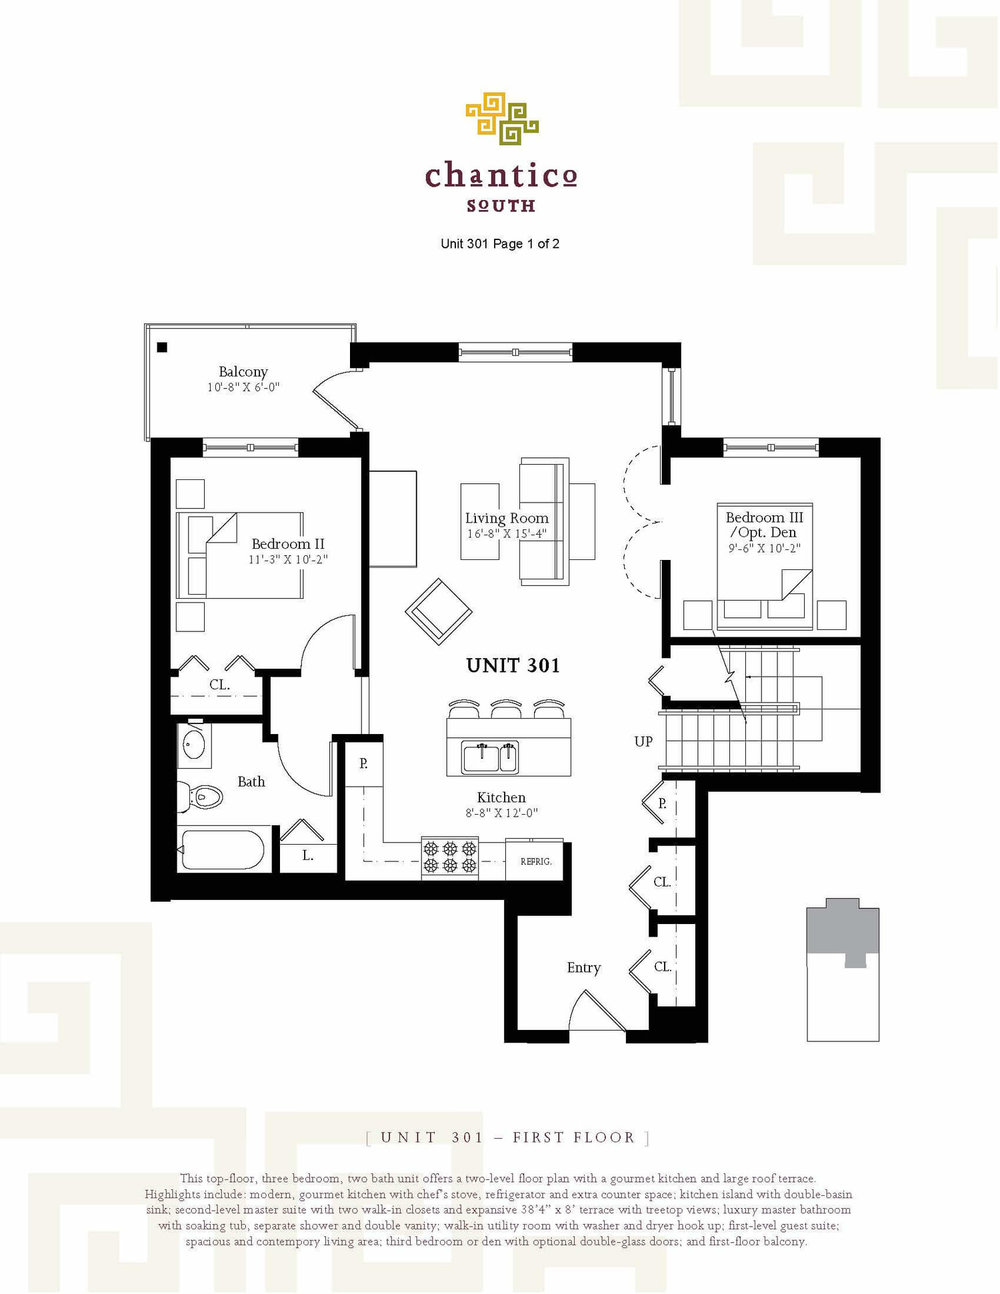 Chicago-apartment-301-Chantico-South-Floorplans-Downstairs.jpg